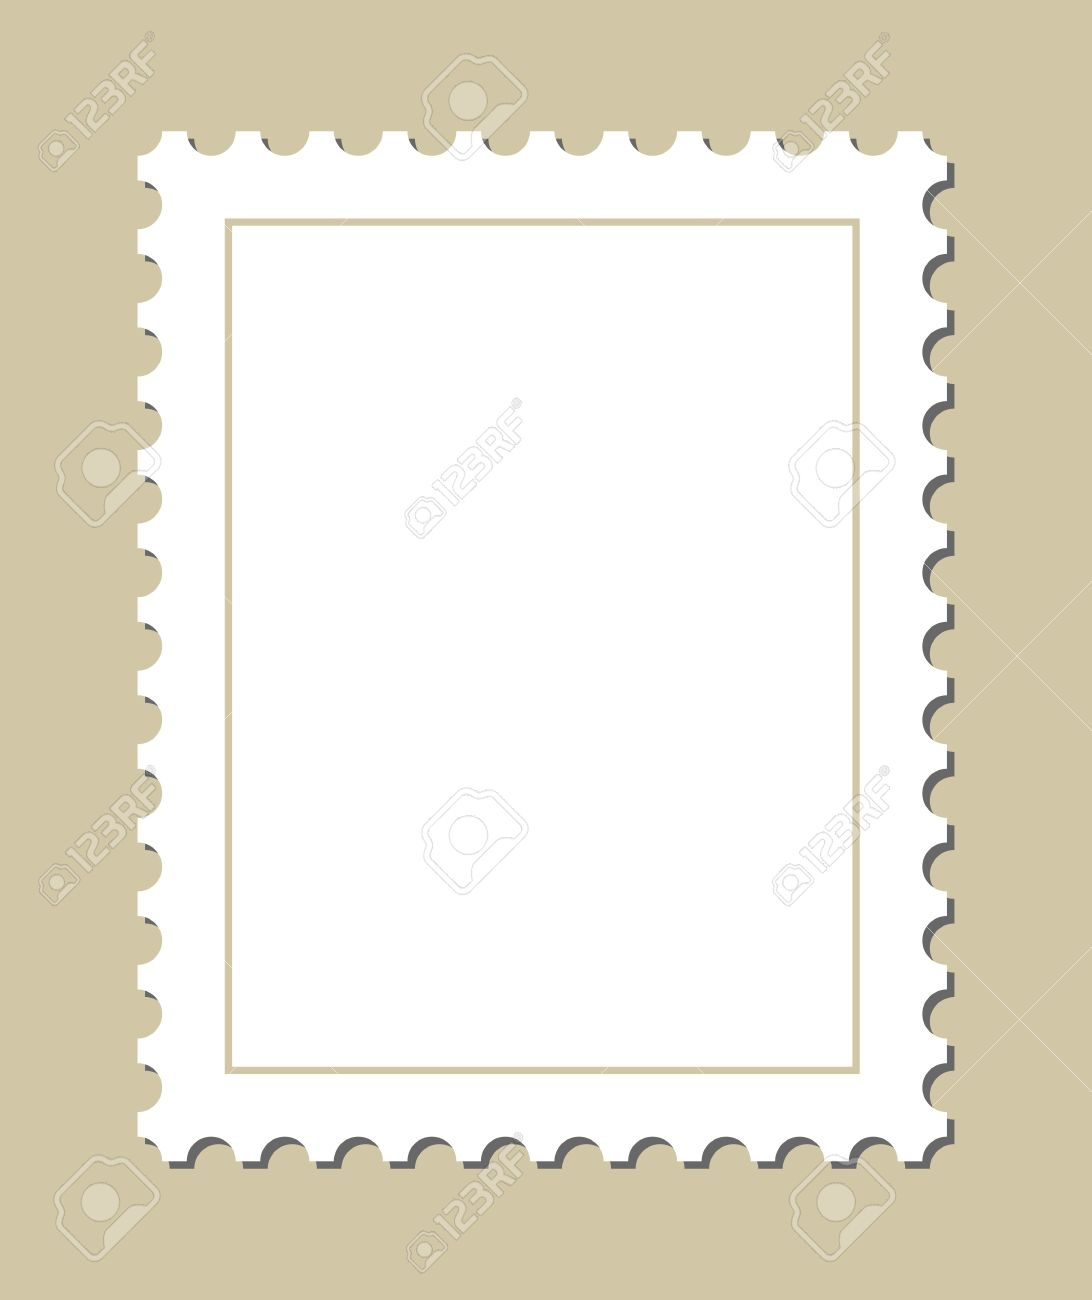 Blank Stamp Template